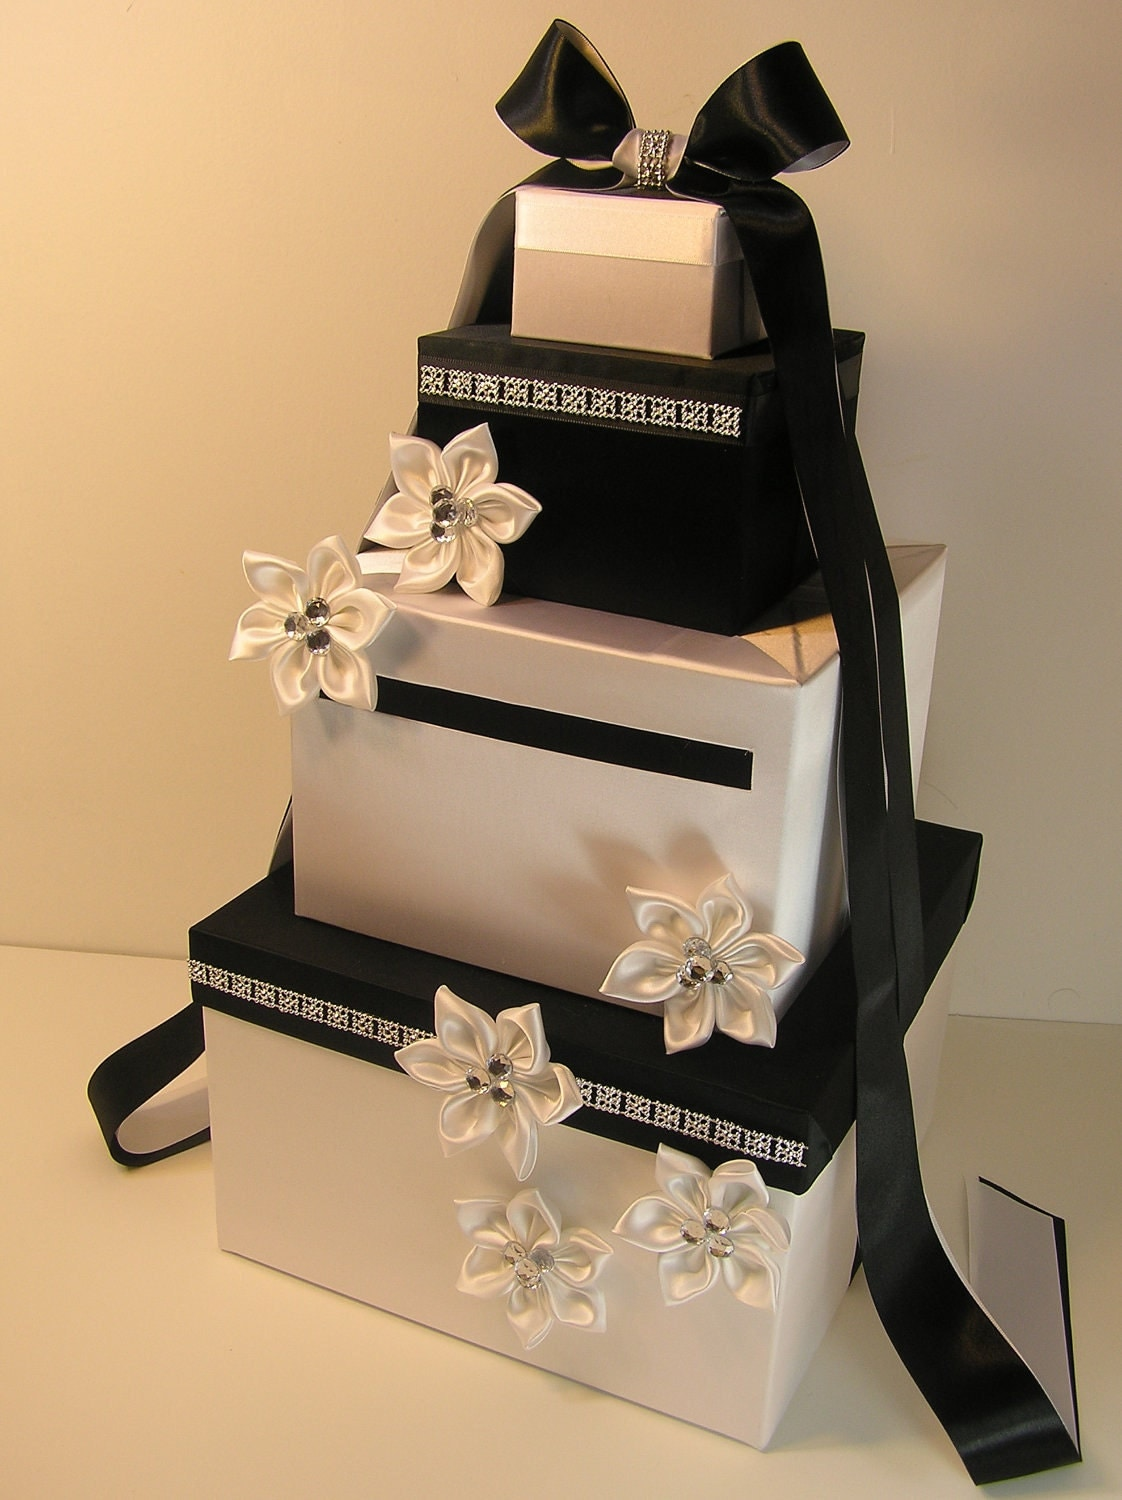 Black And White Wedding Gift Card Box : Wedding Card Box White and Black Gift Card Box Money Box